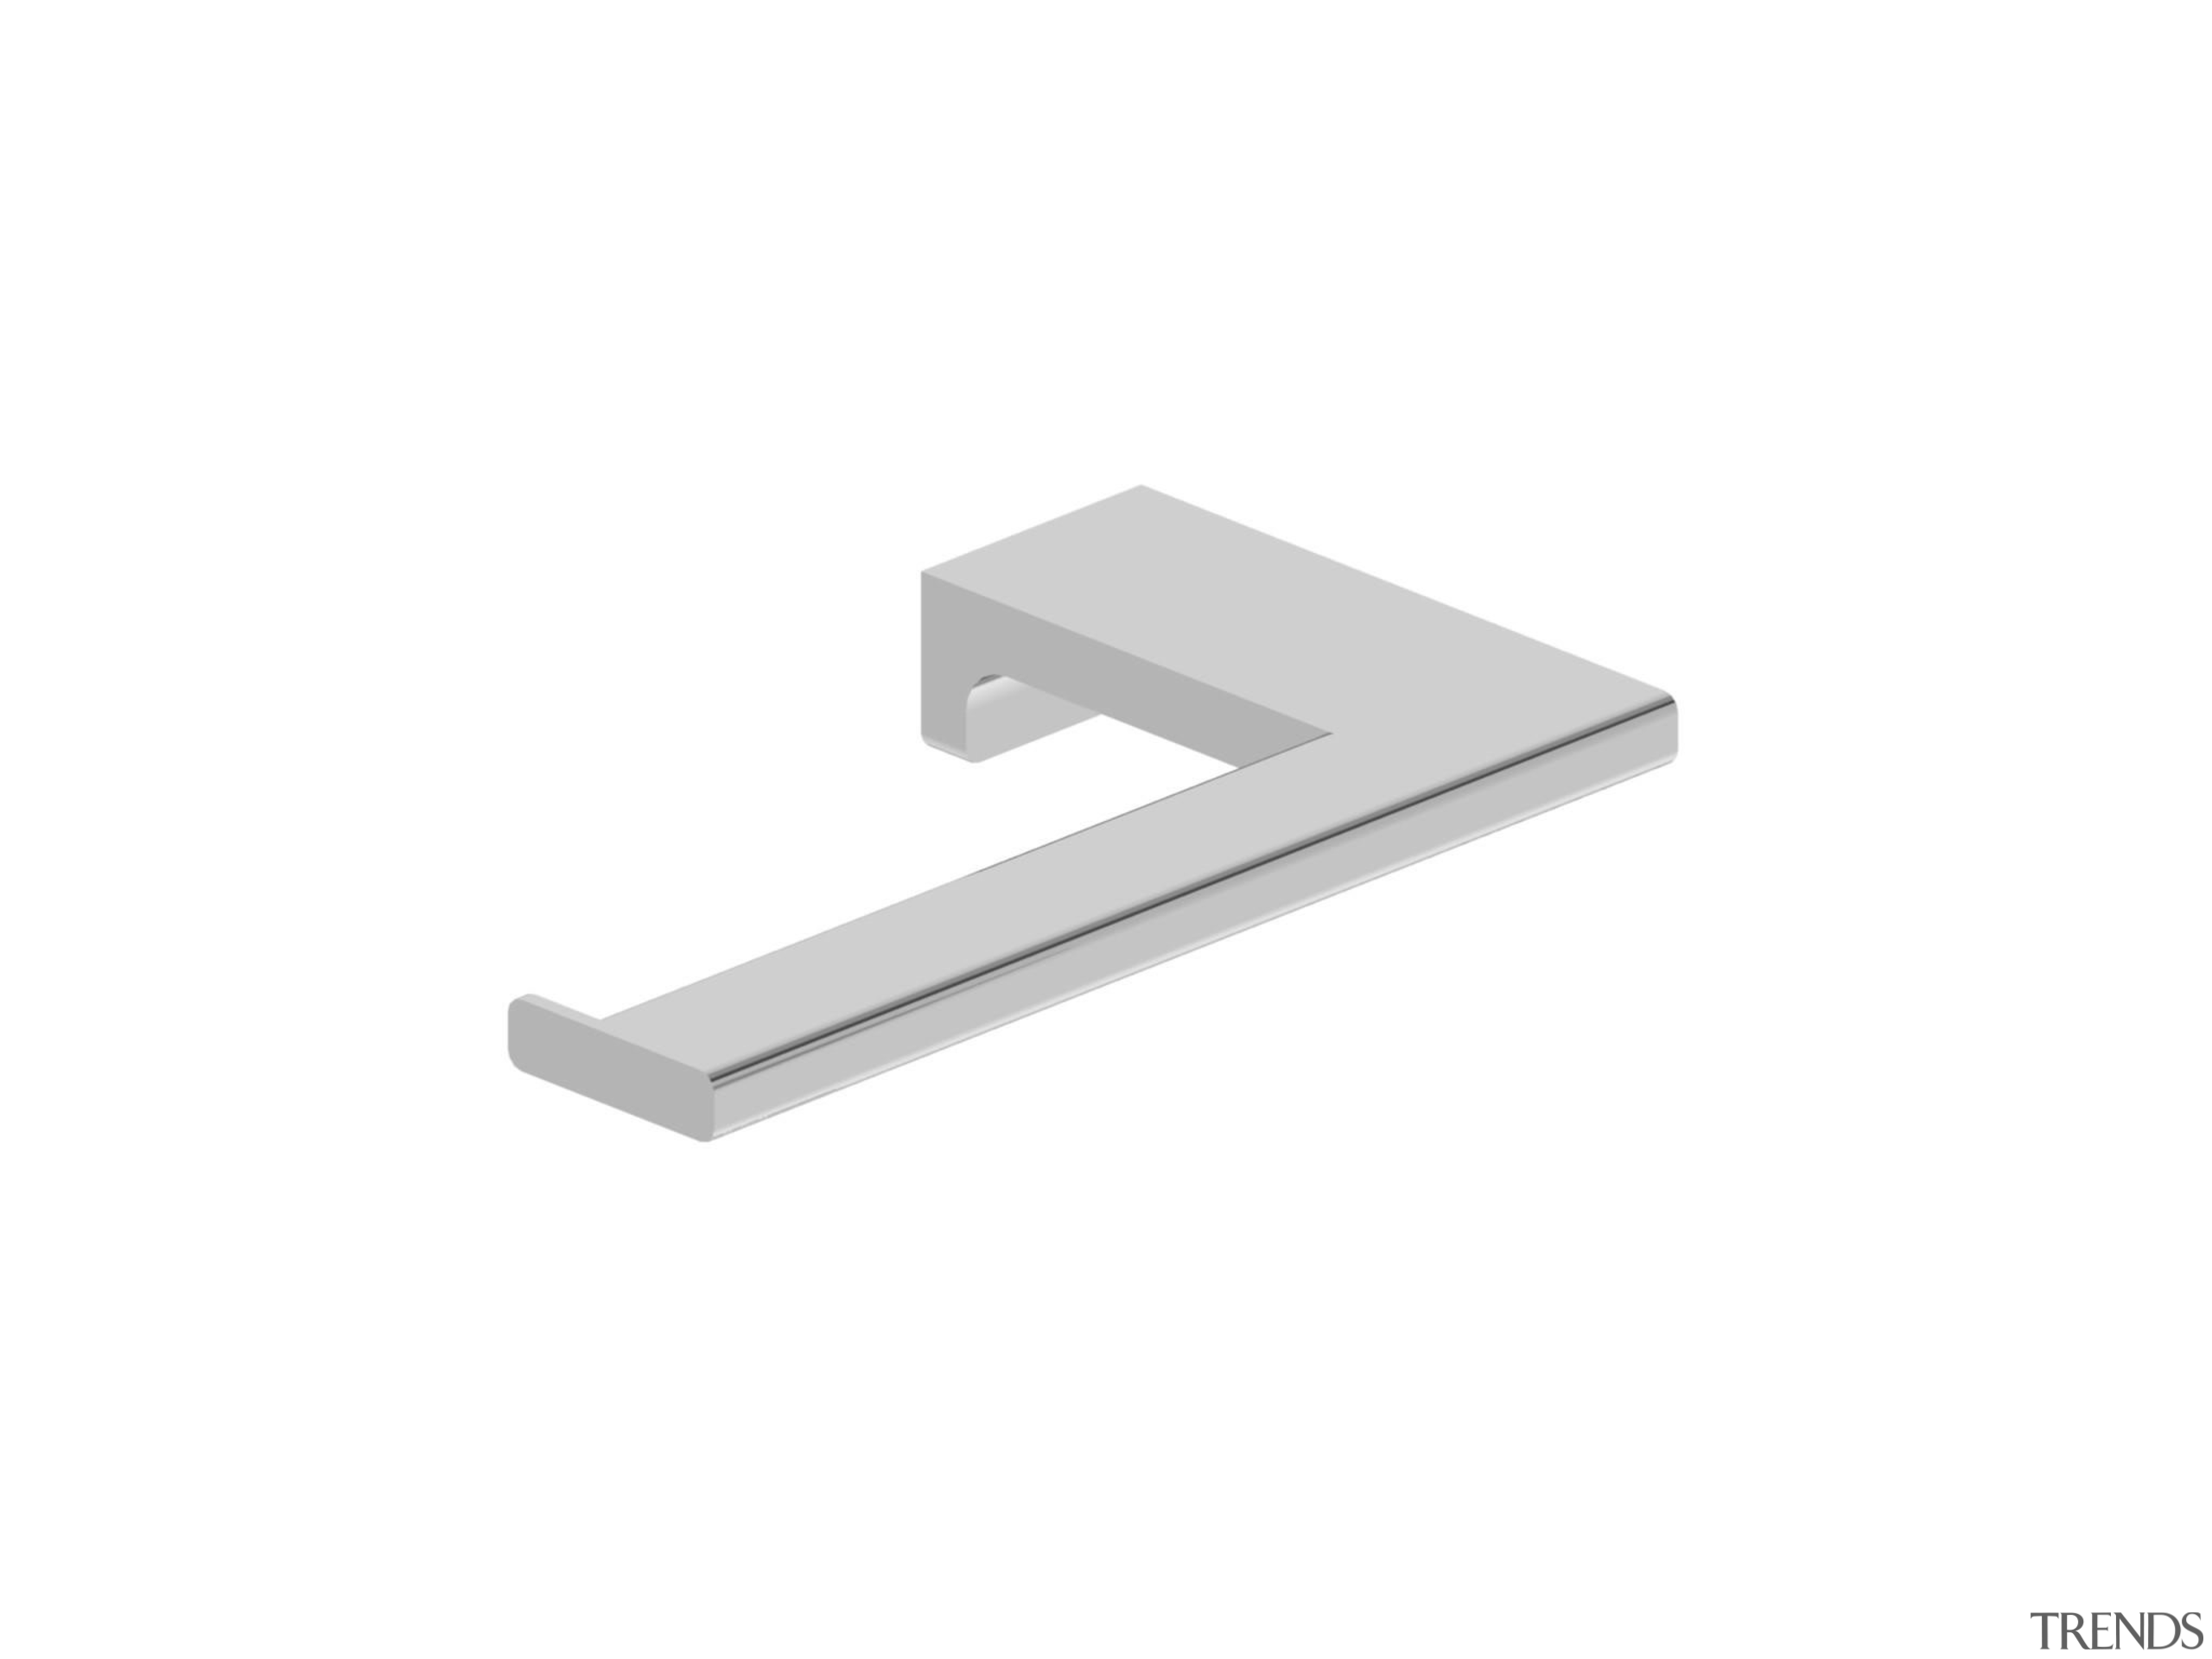 • Manufactured in Australia• Warranty 10 Years• DirectConnect angle, product design, white